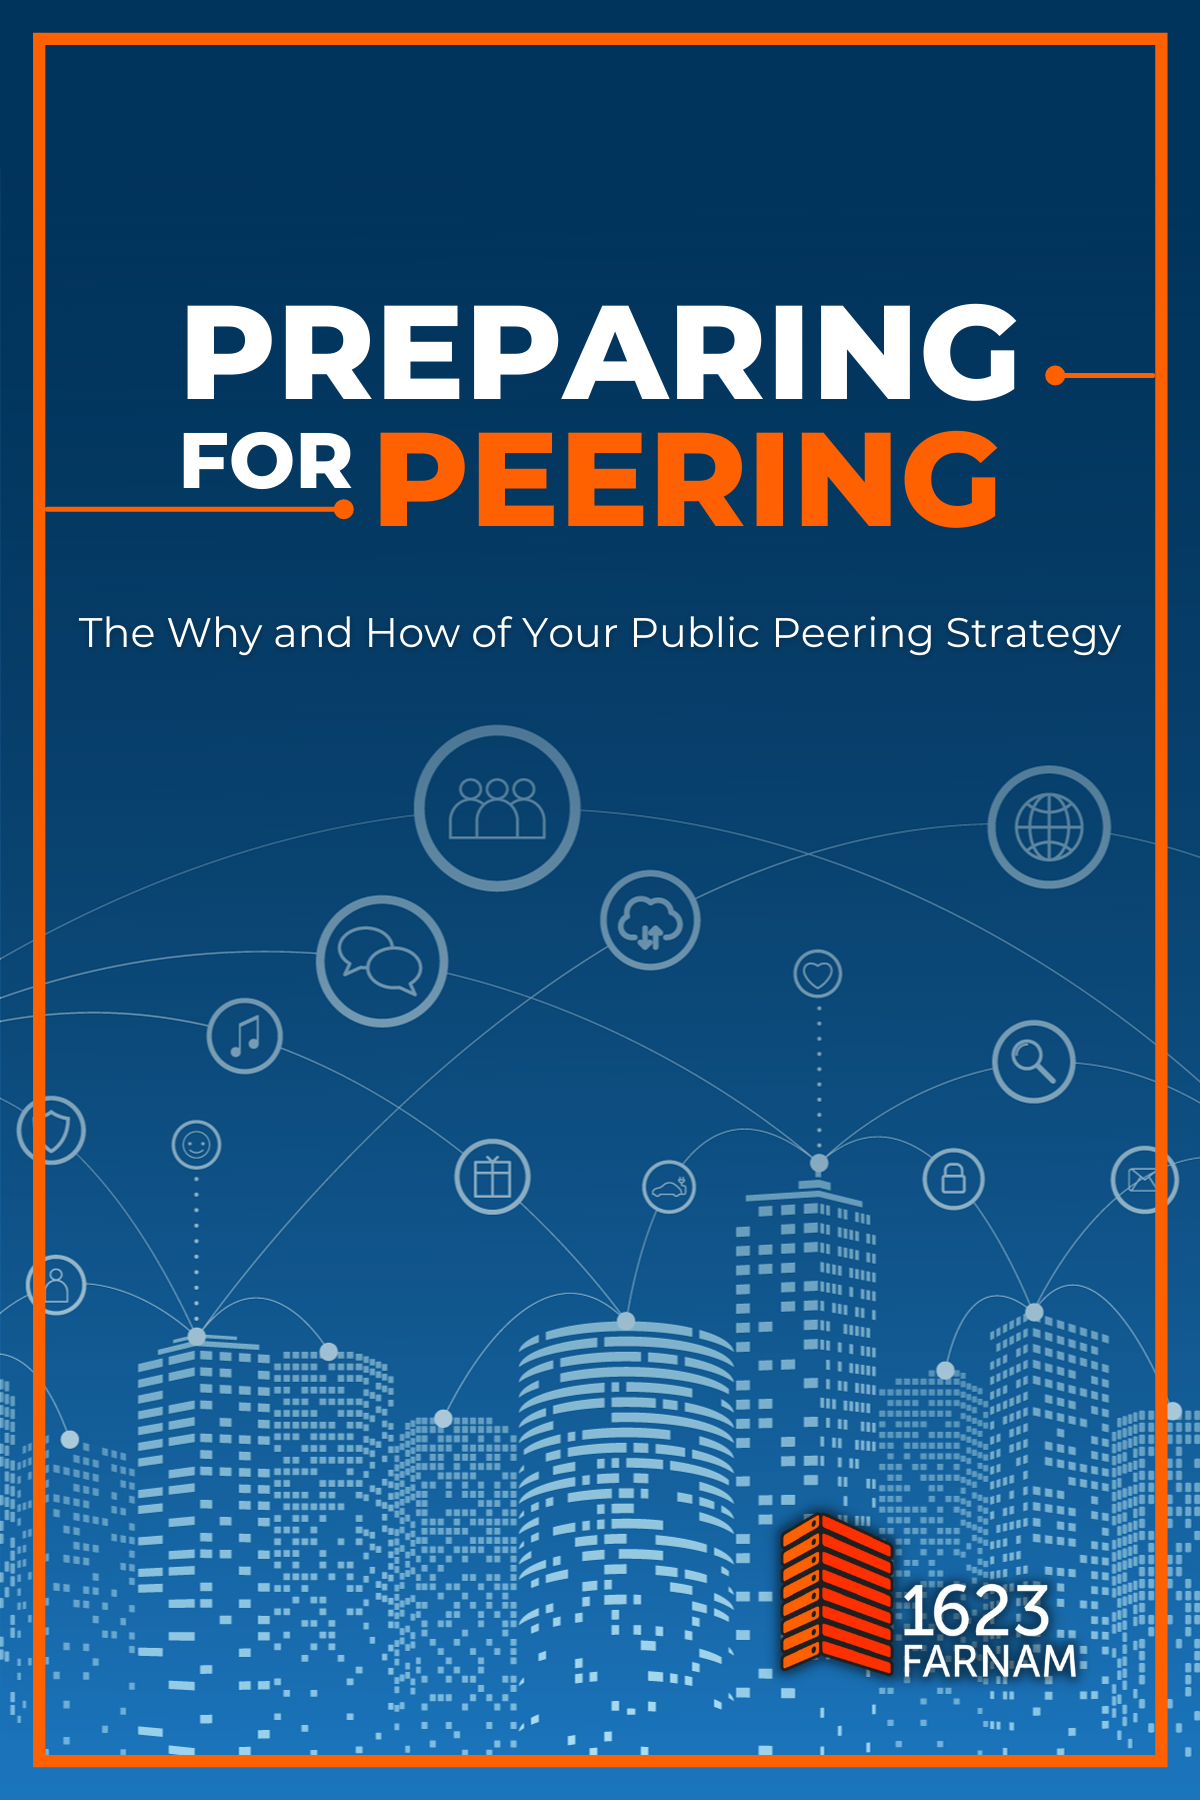 Preparing for Peering: The Why and How Of Your Public Peering Strategy